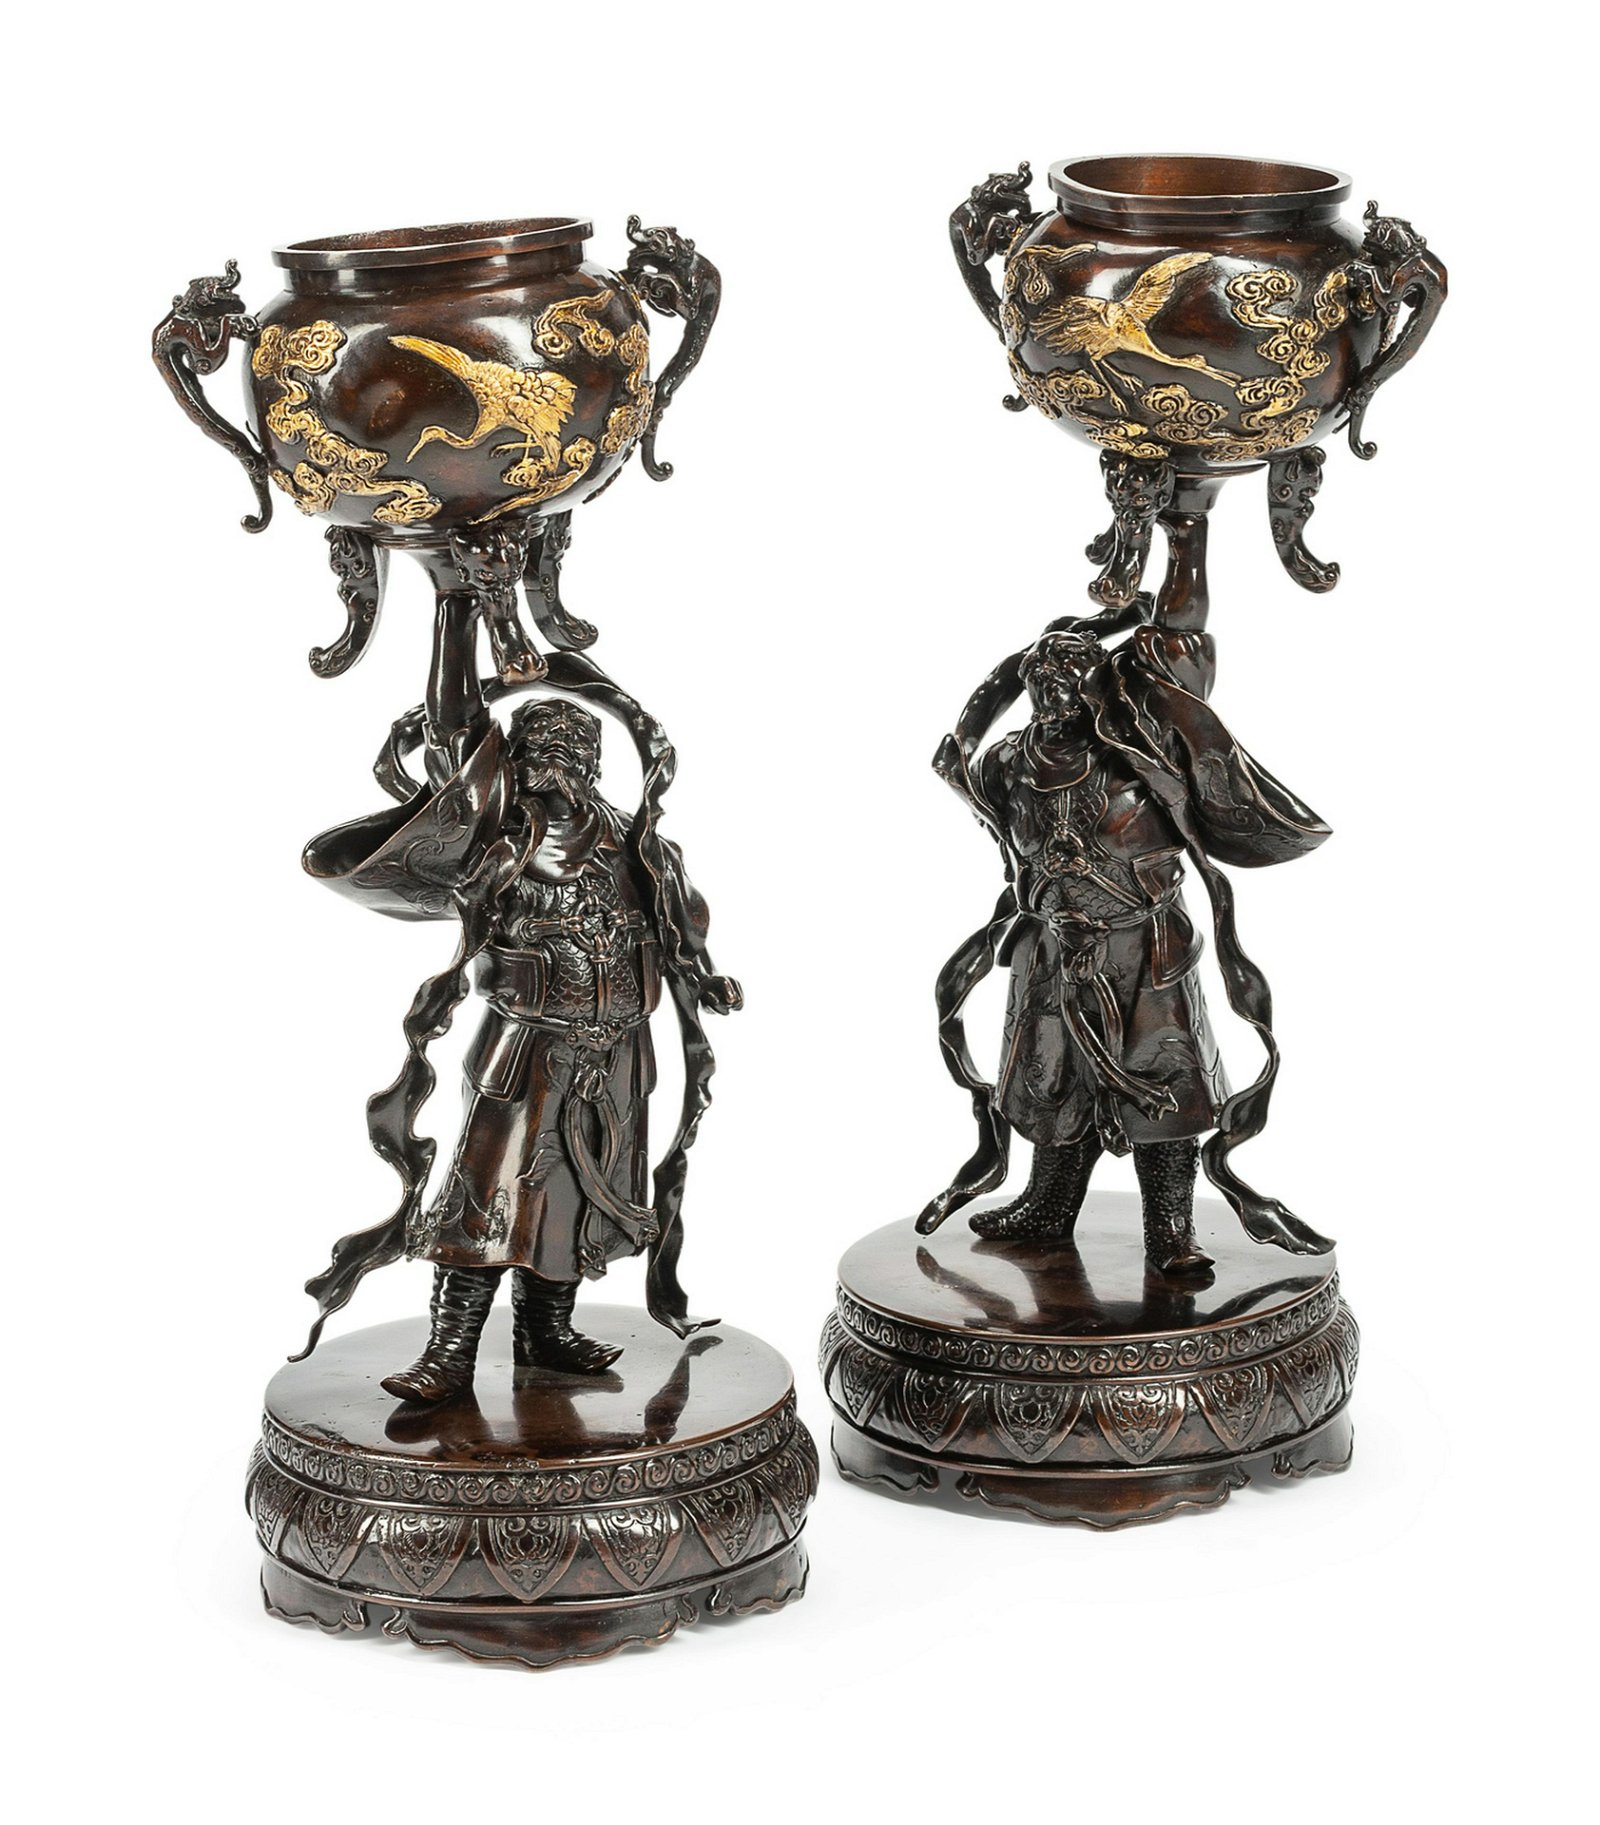 A Pair of Japanese Gilt and Patinated Bronze Figural